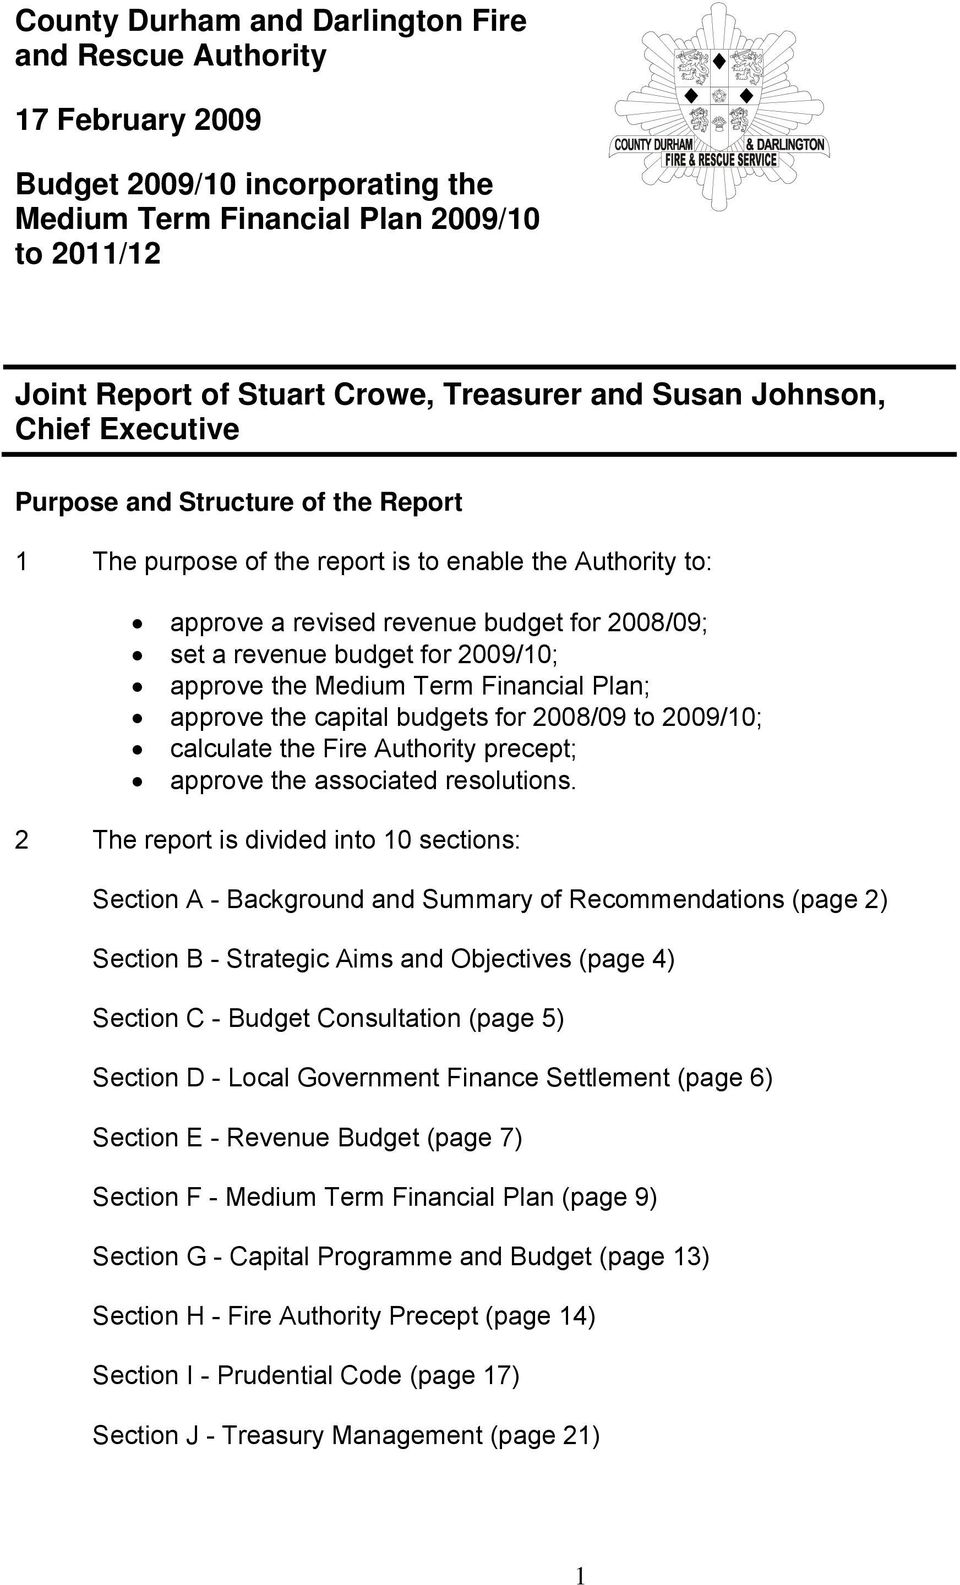 2009/10; approve the Medium Term Financial Plan; approve the capital budgets for 2008/09 to 2009/10; calculate the Fire Authority precept; approve the associated resolutions.